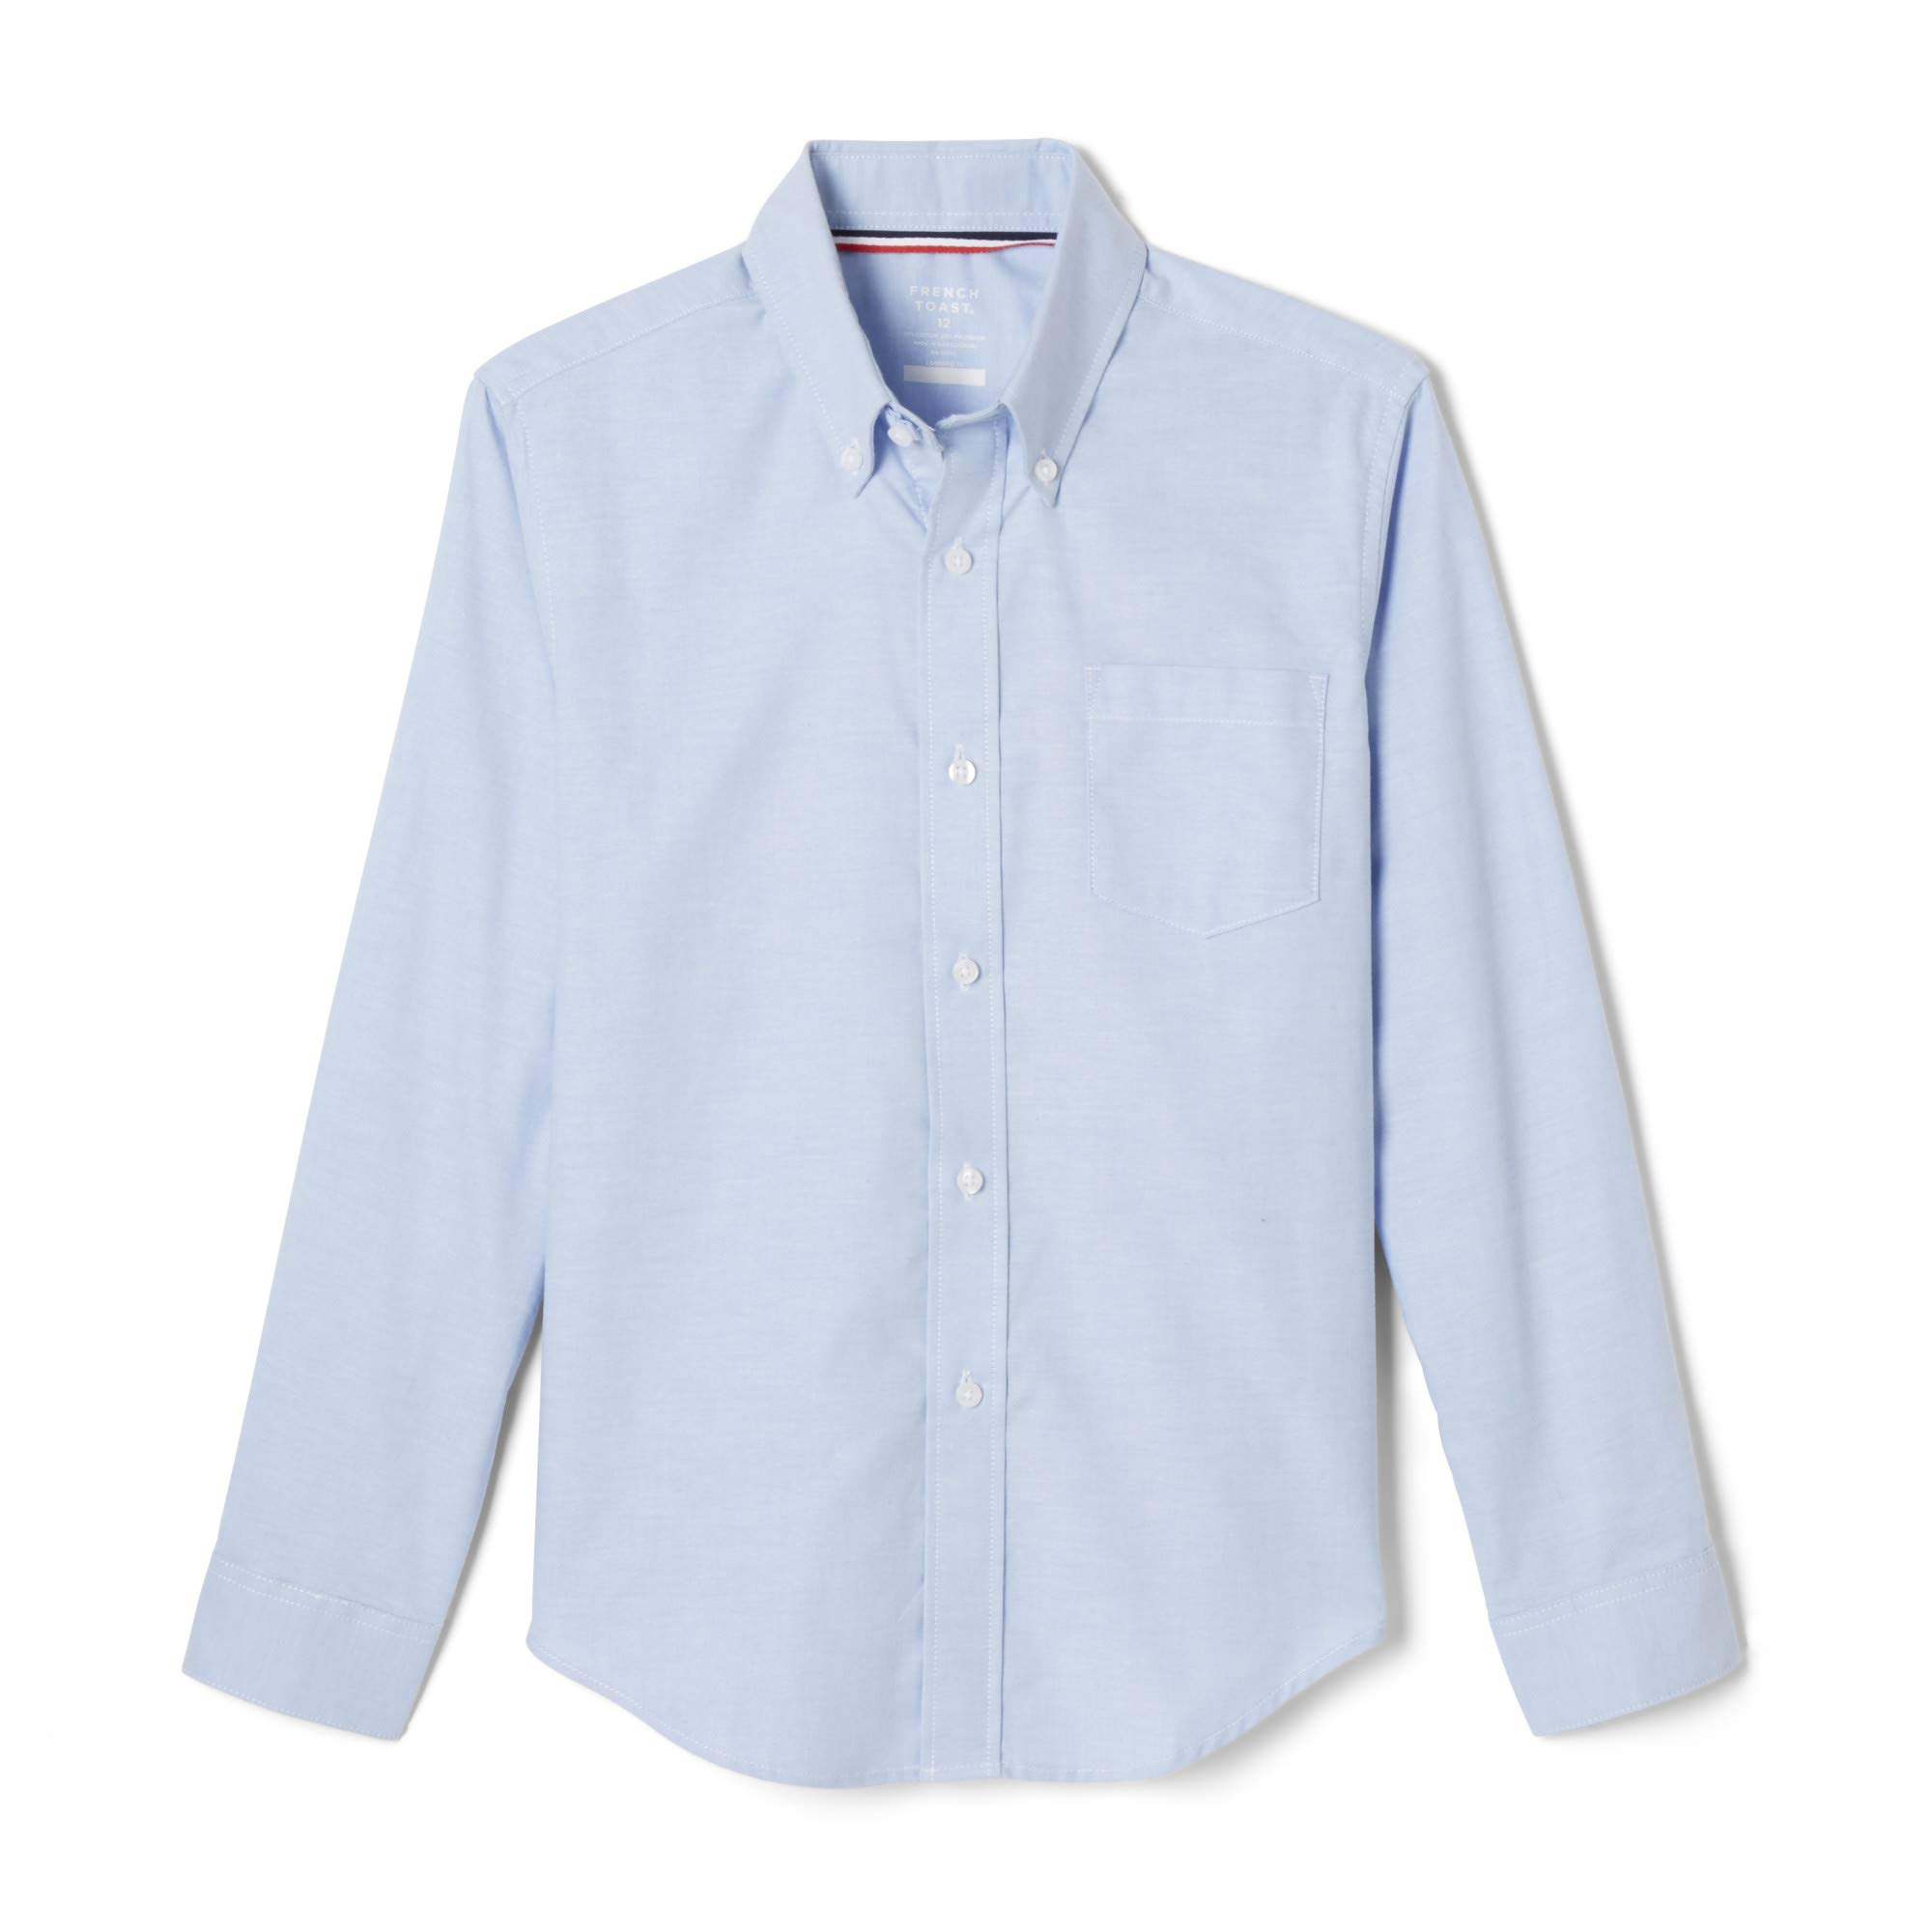 French Toast Boys' Long Sleeve Oxford Shirt, Light Blue, Large by French Toast (Image #1)